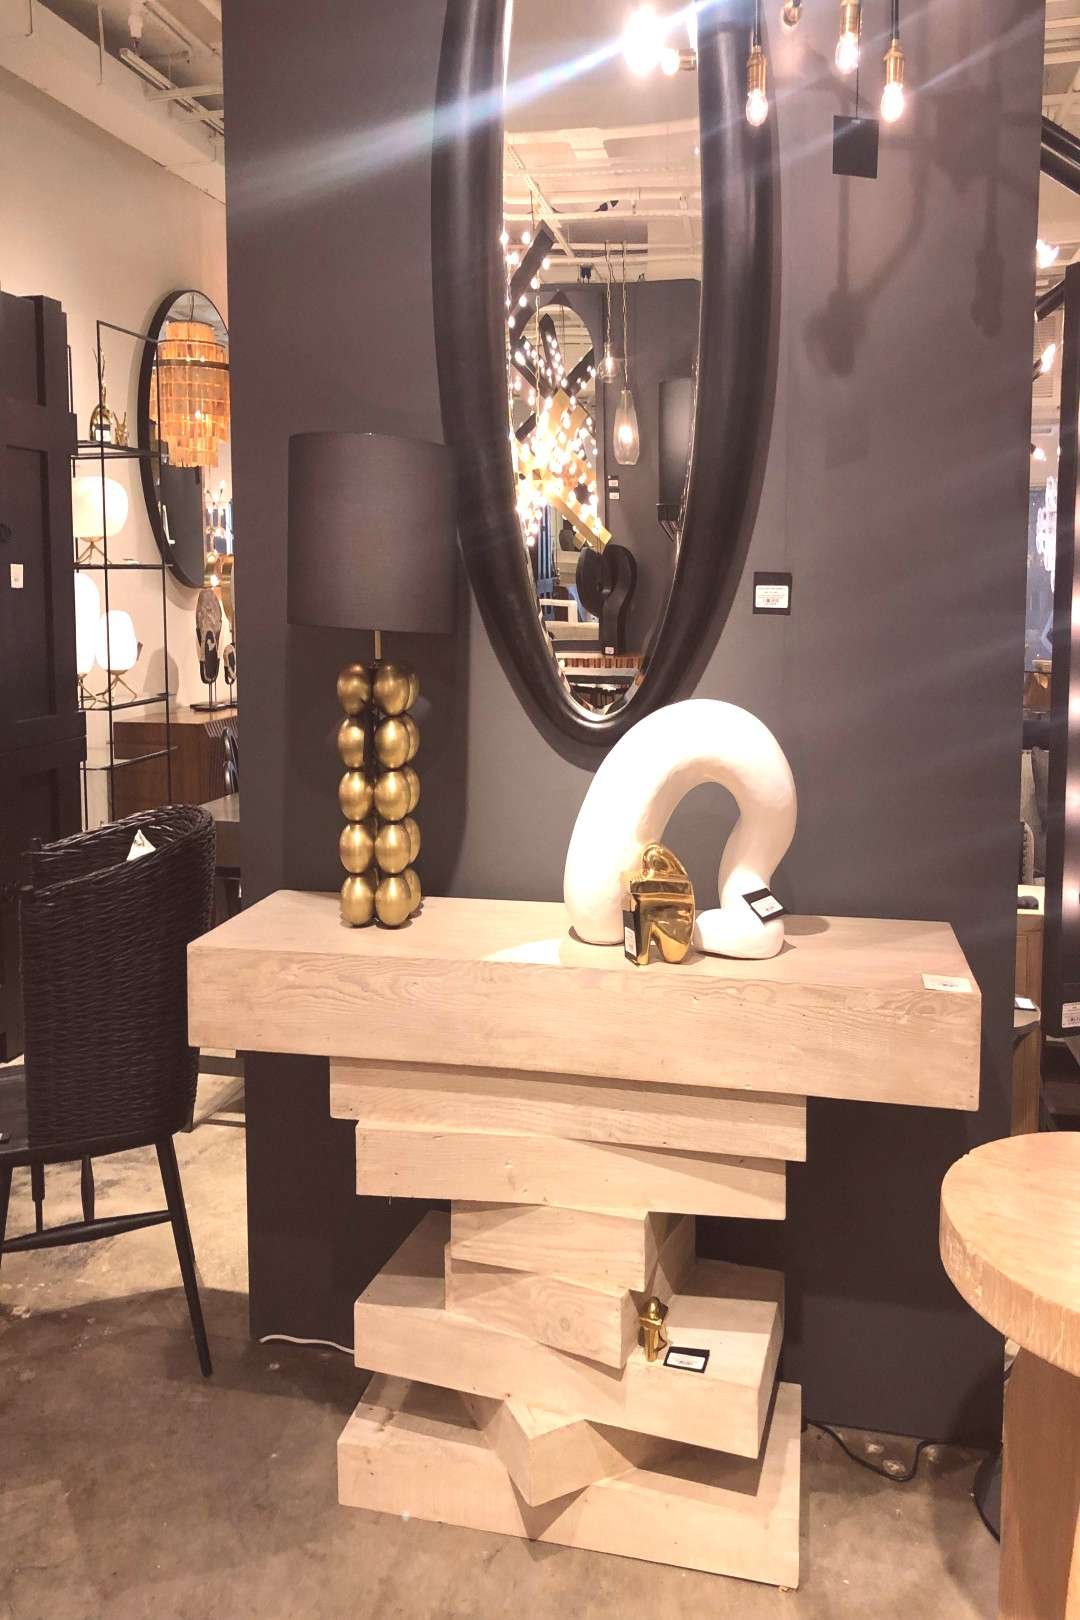 noir cfc showroom americas mart-Hotlanta, Americas Mart and Scotts Antiques